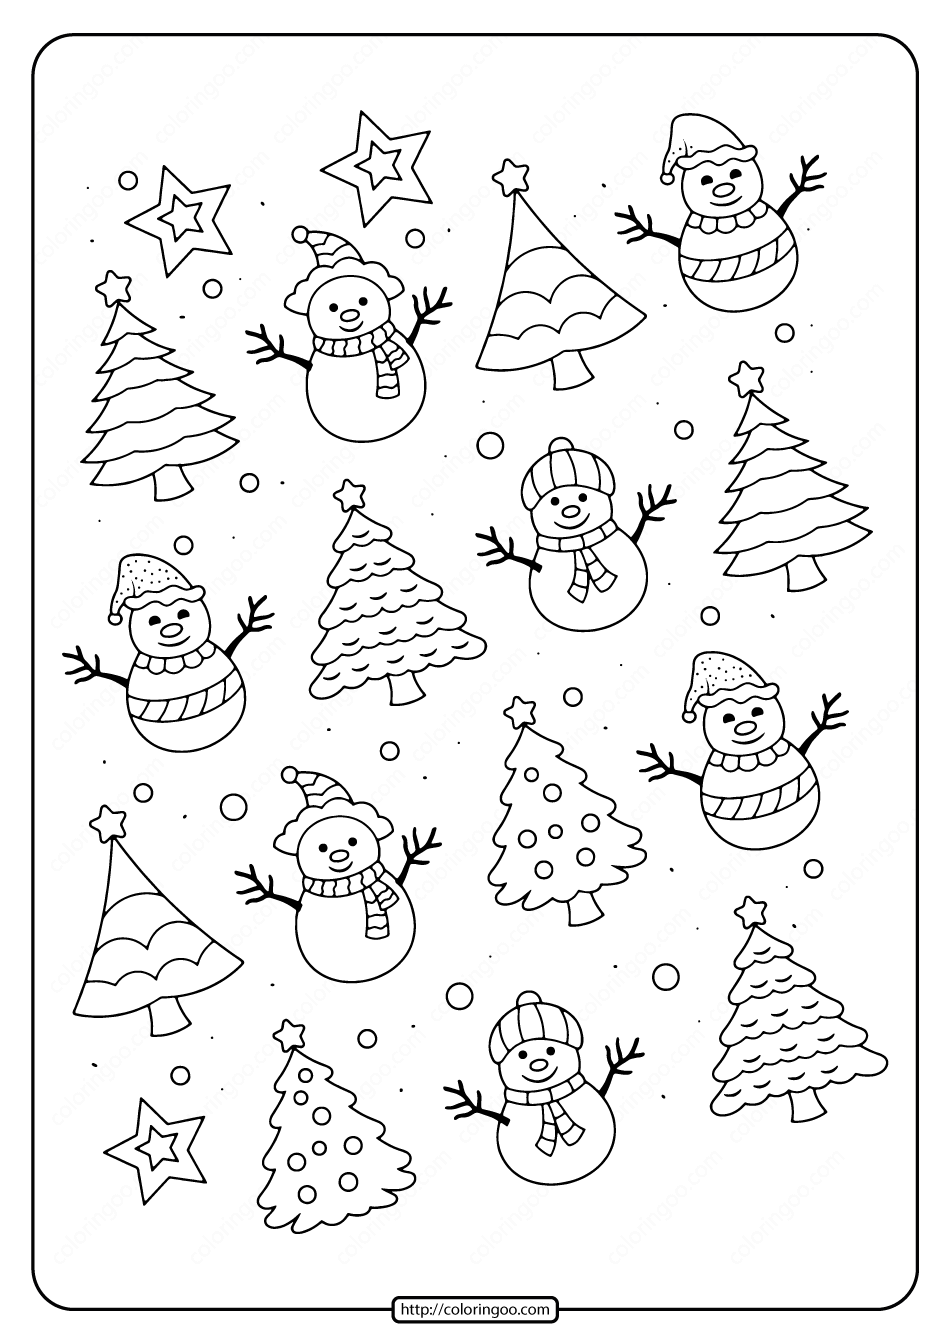 Easy Snowmen Coloring Pages for Kids